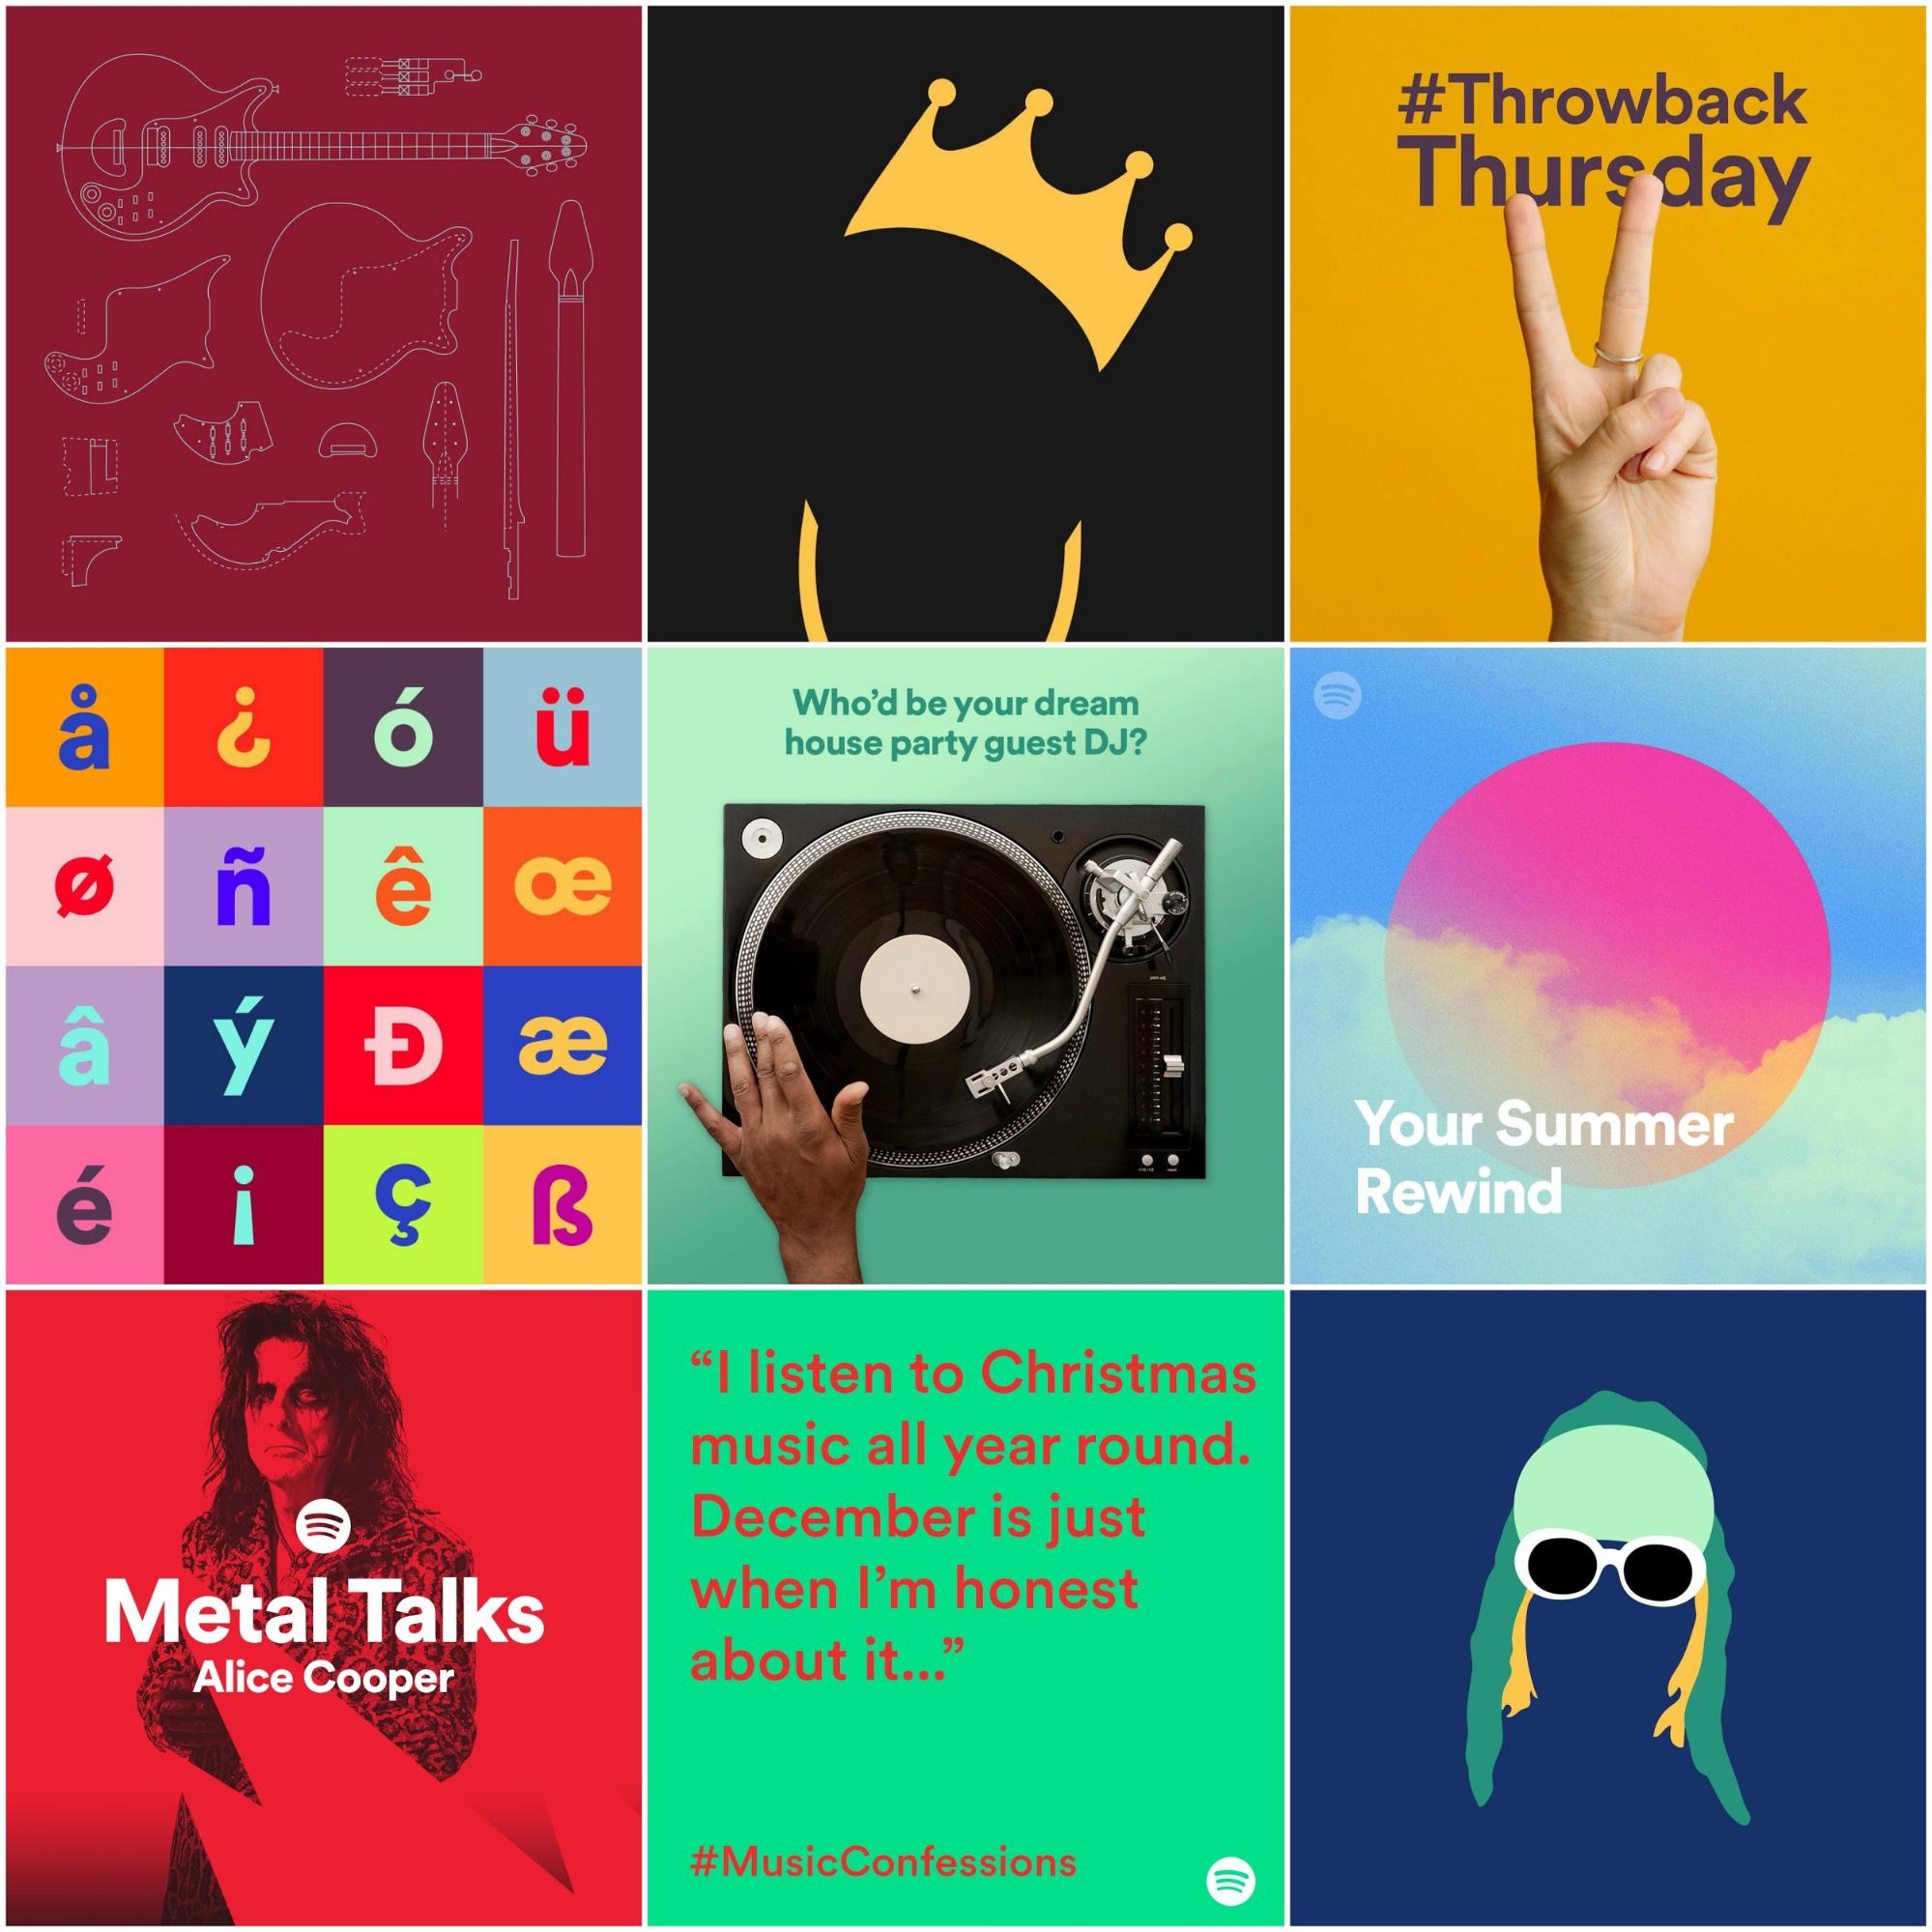 Cool Graphic Design Trends 2018: 8 New Graphic Design Trends That Will Take Over 2018 - Venngagerh:venngage.com,Design